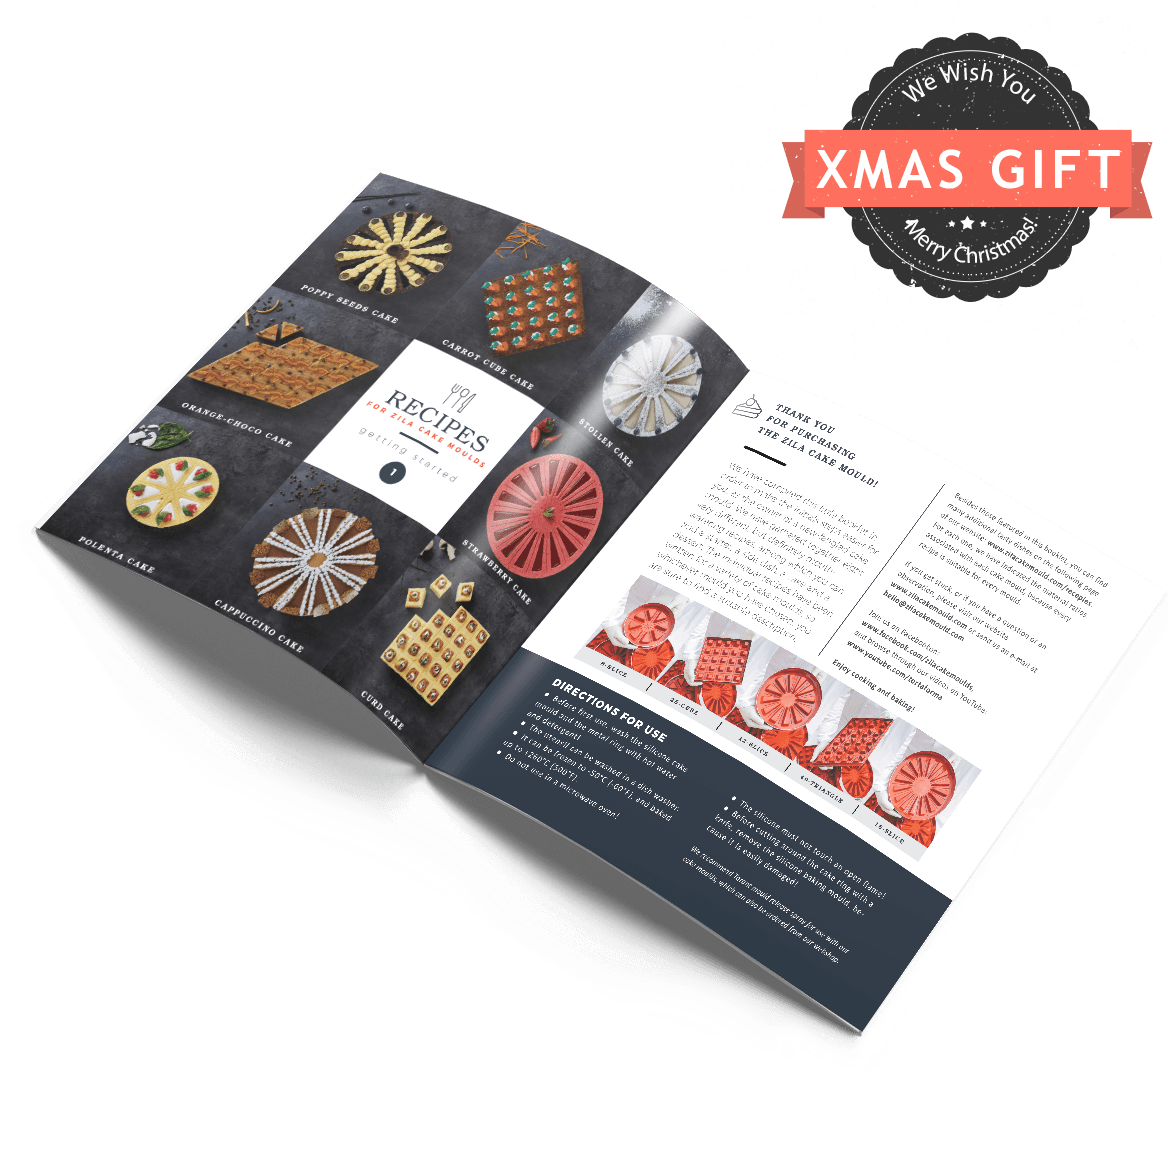 Zila cake moulds recipes booklet